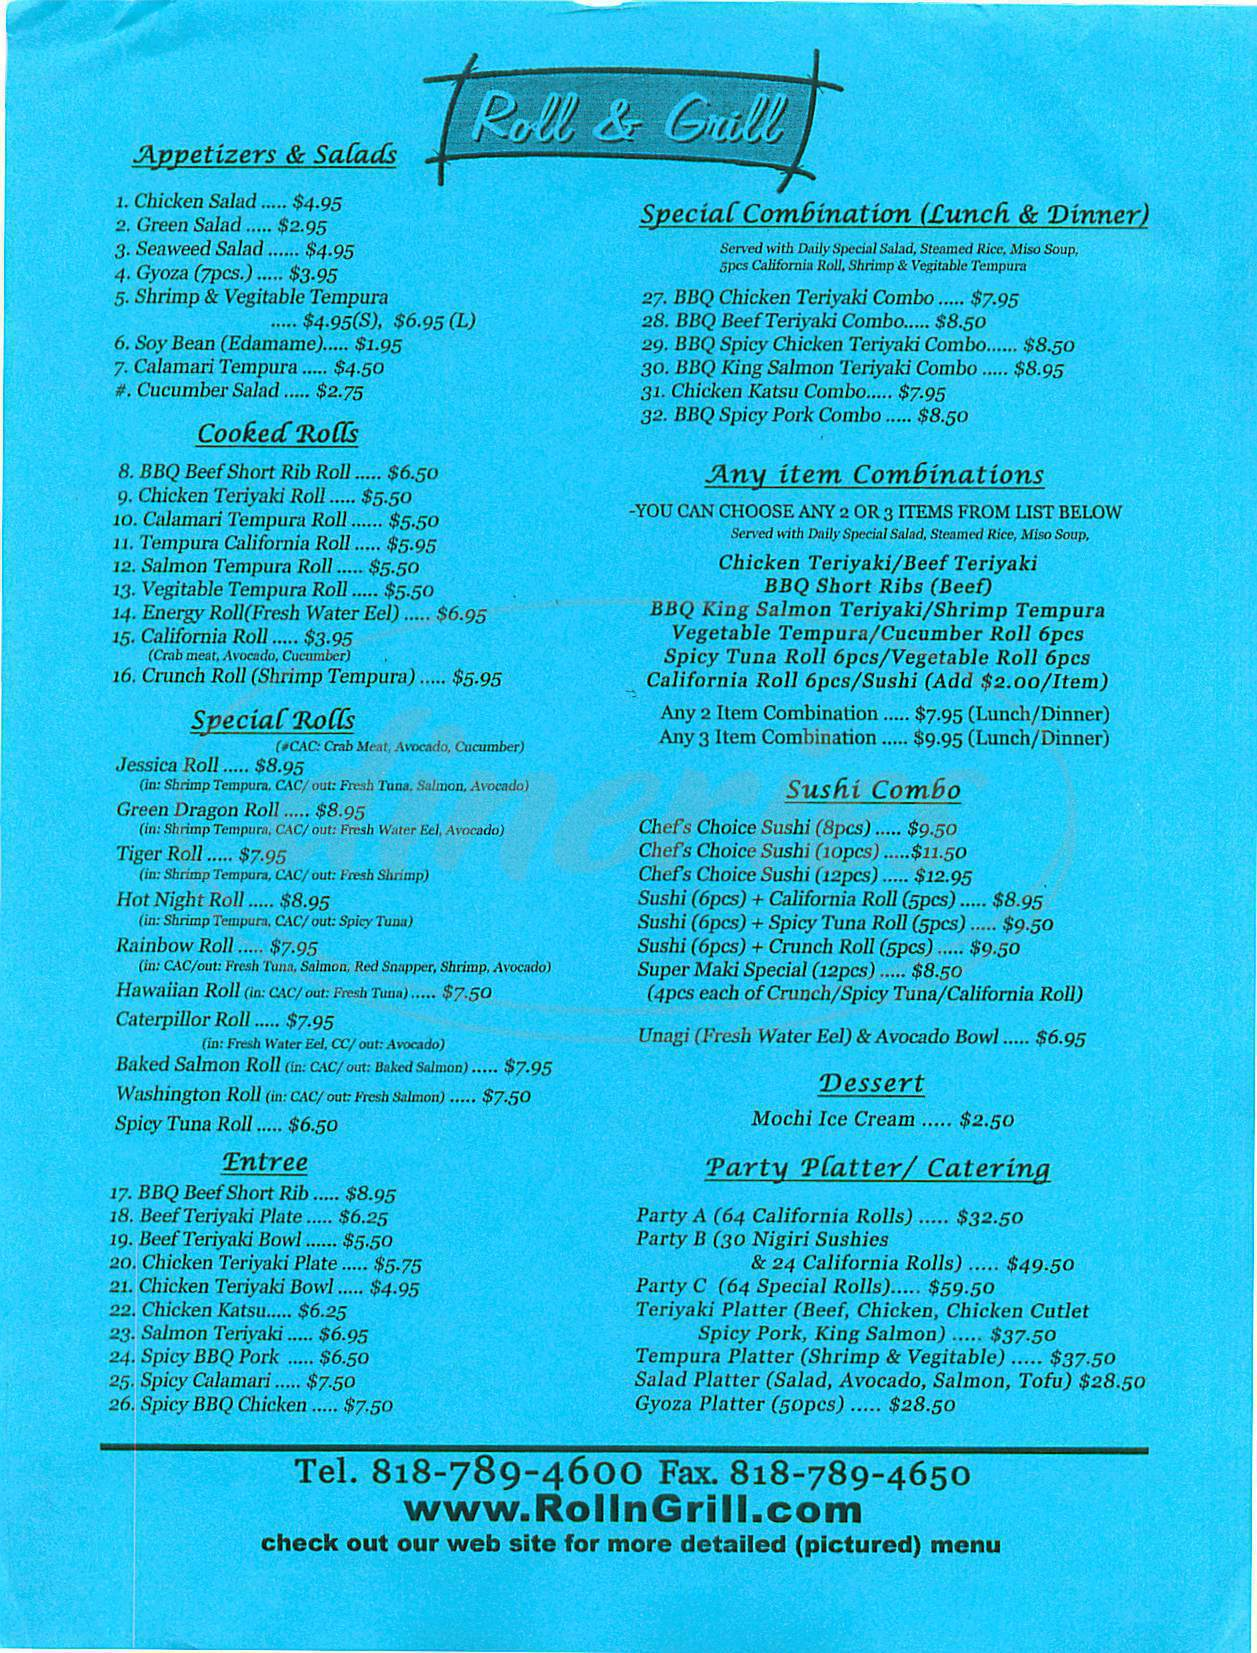 menu for Roll & Grill